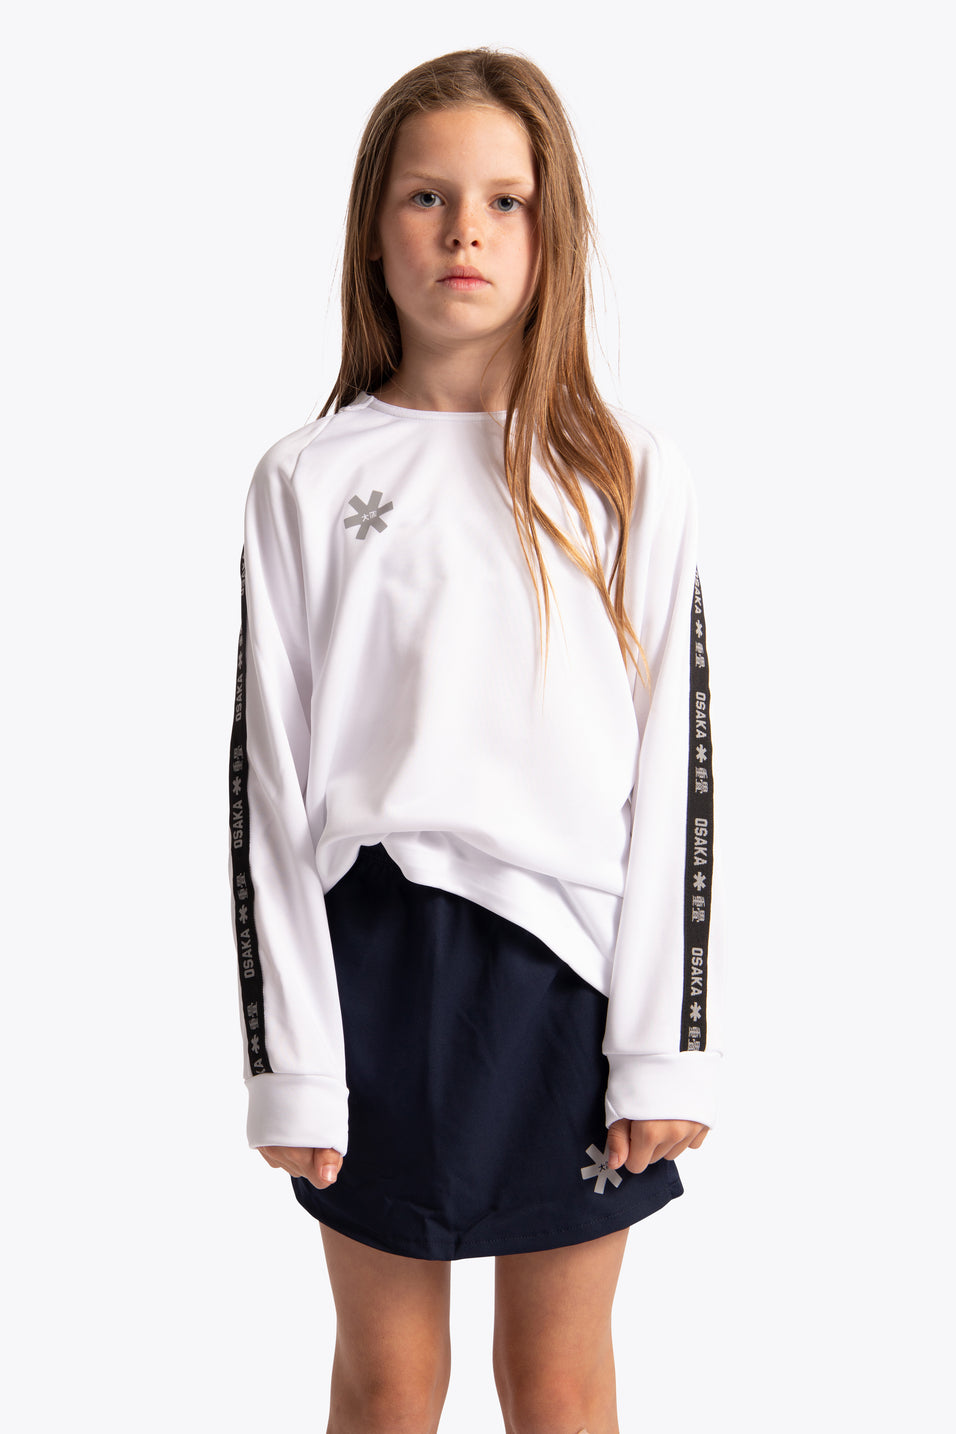 Osaka training sweater kids white